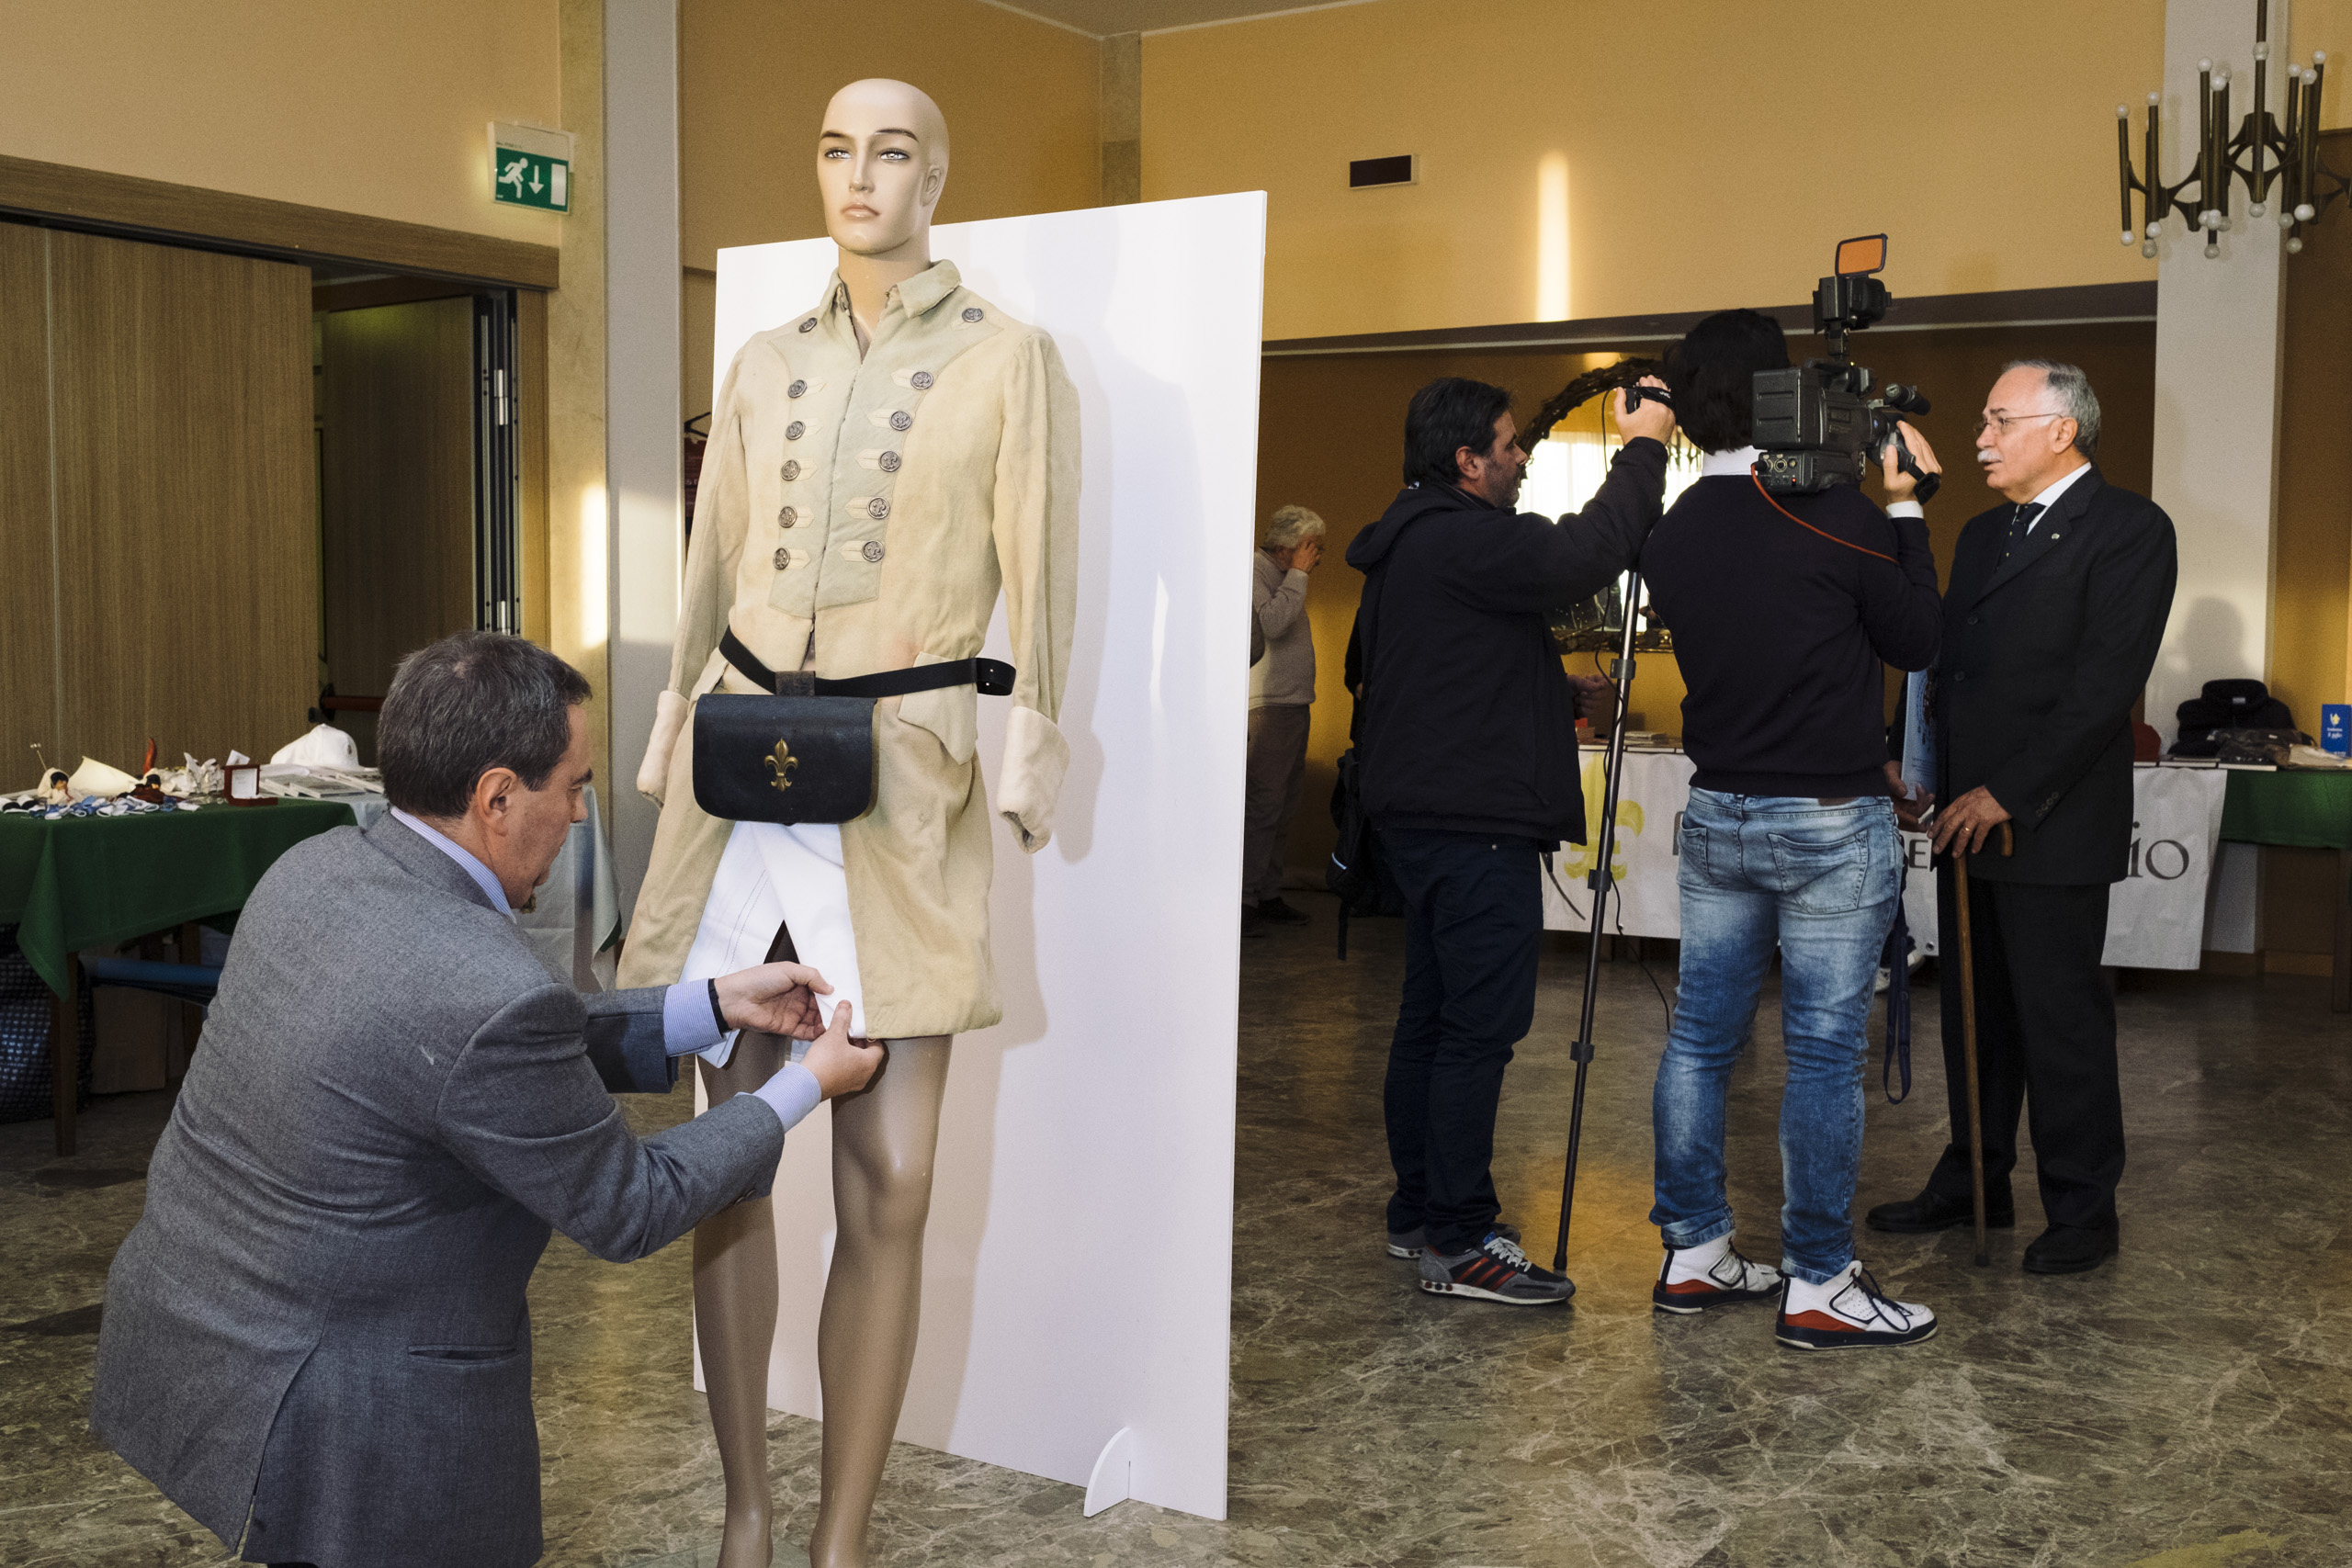 A mannequin with the uniform of an old Bourbon soldier is set up in Gaeta during the annual  Neo-Bourboun Cultural Association  (Movimento Neoborbonico) meeting, February, 2016. The association meets up every year in Gaeta to remember the siege of the city in one of the last battles before unification.